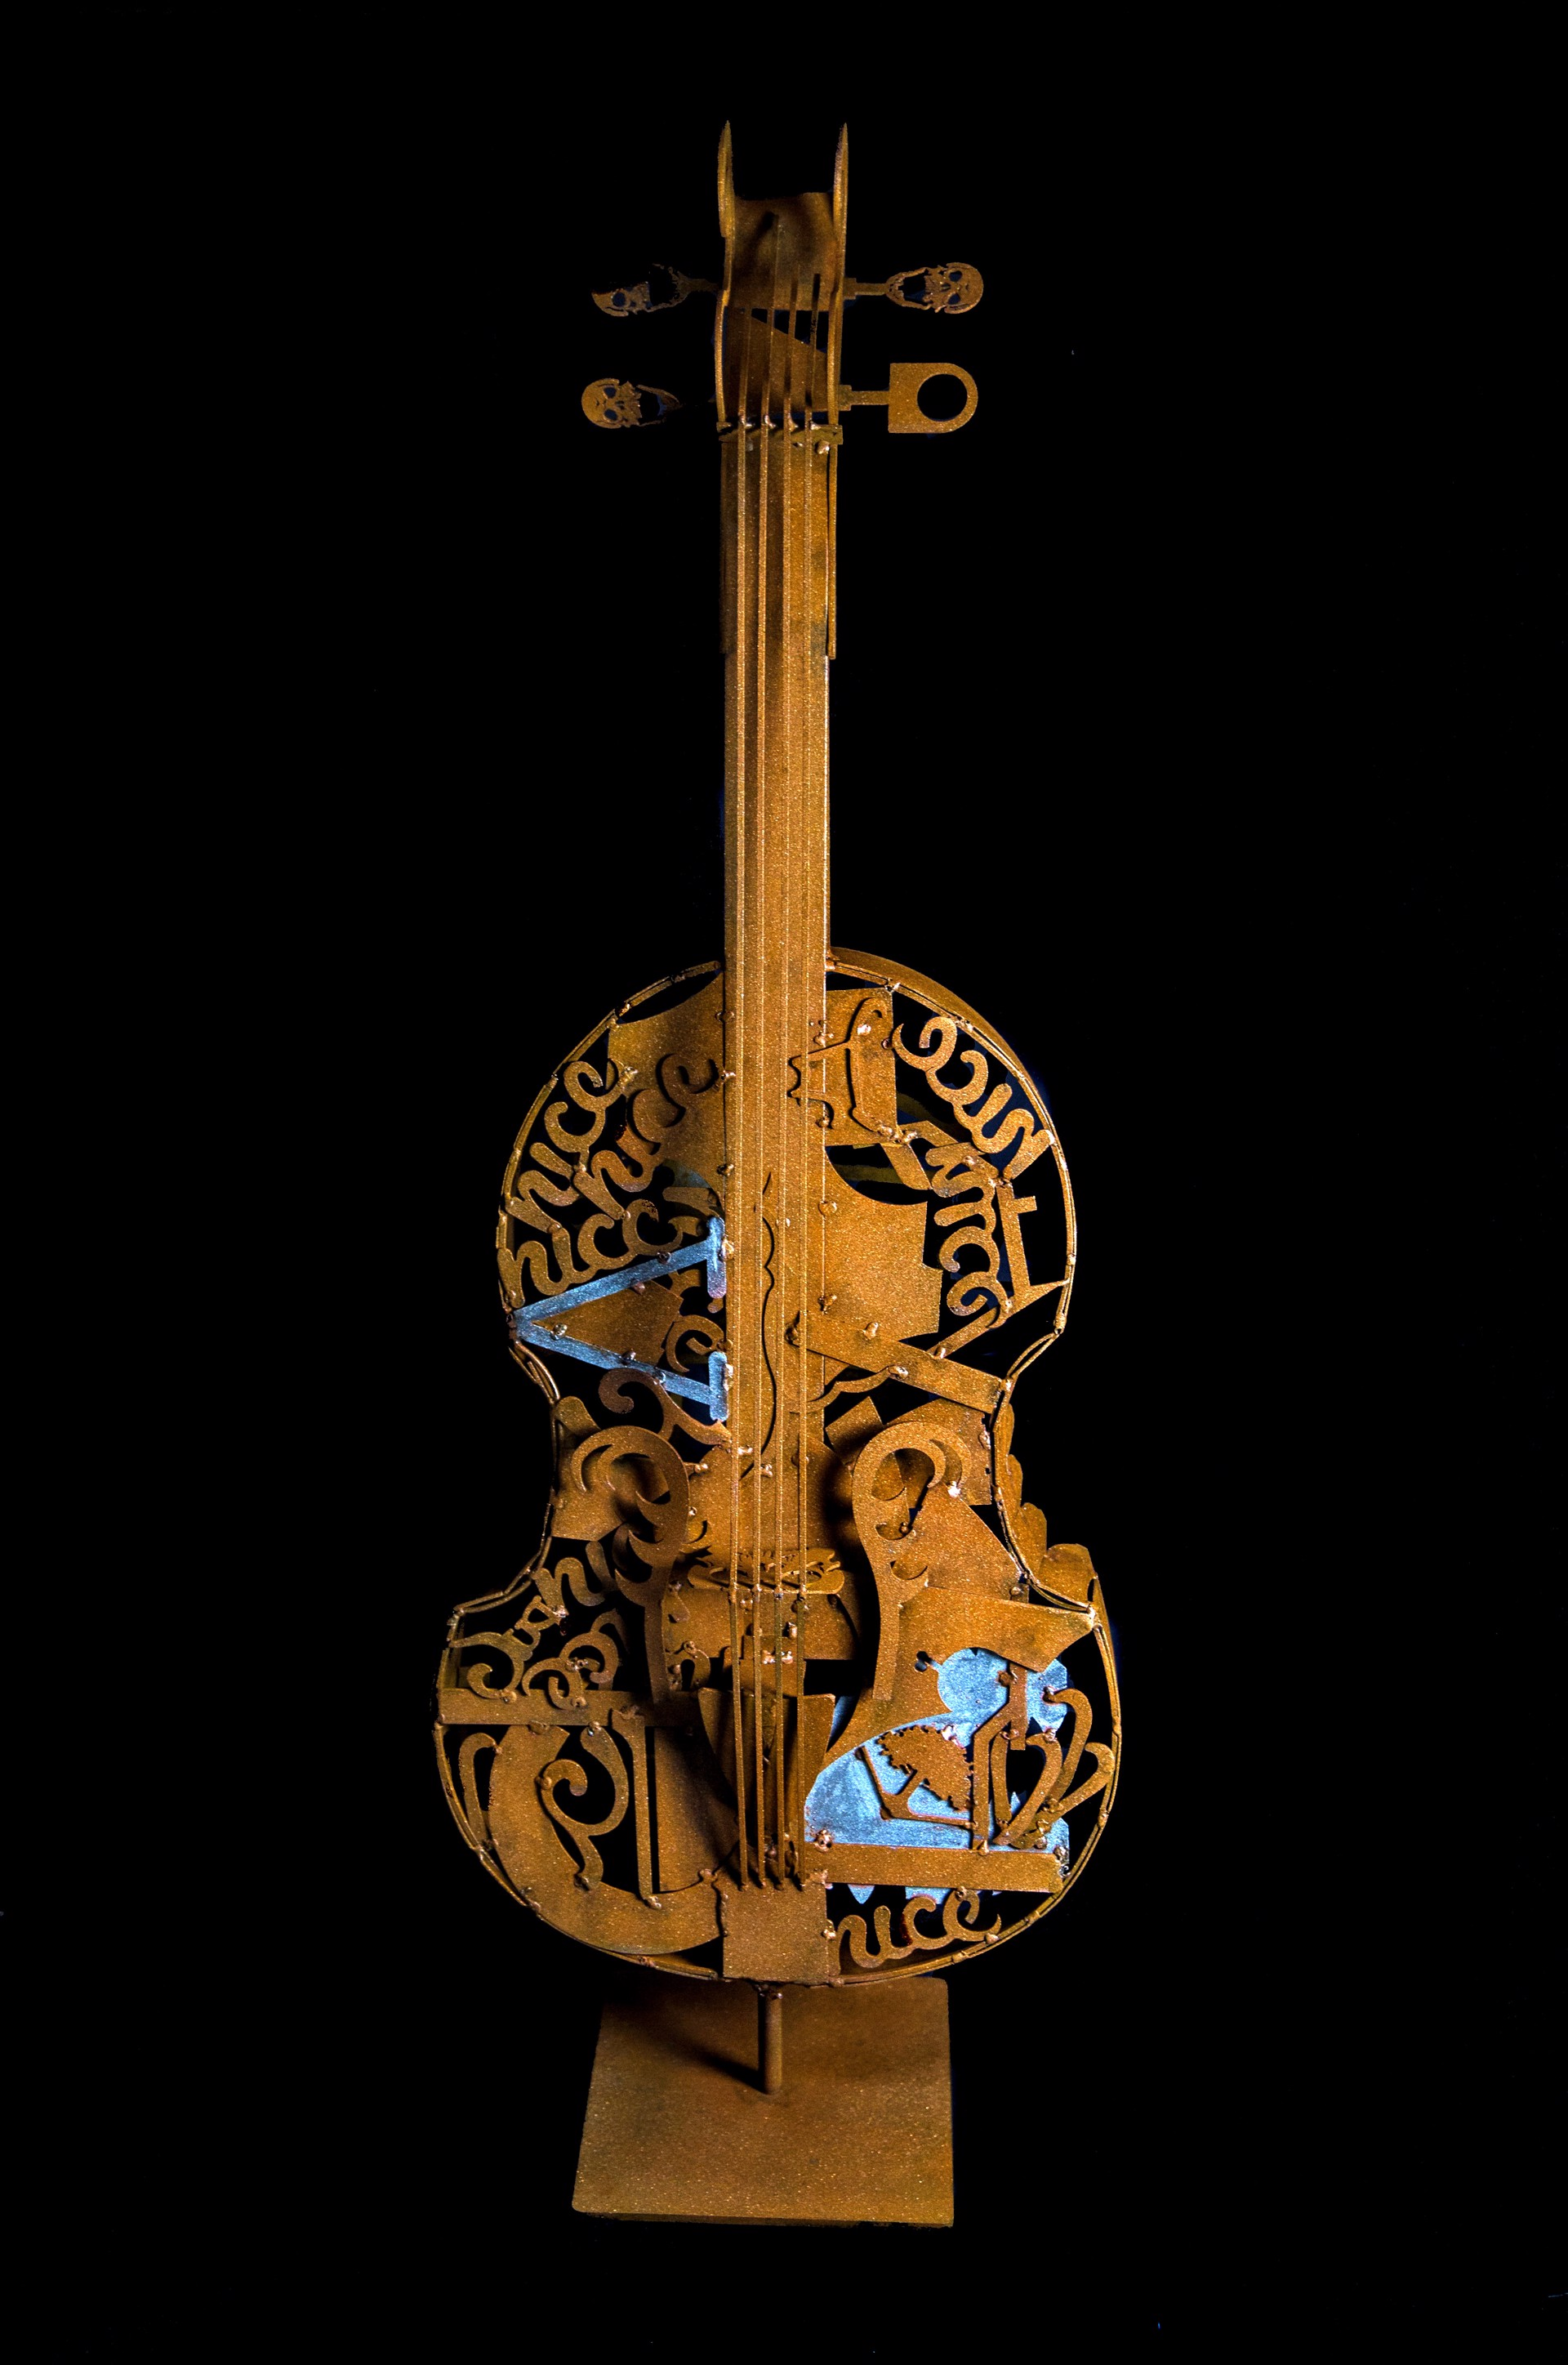 Heavy Metal Cello II by Eric Johnson